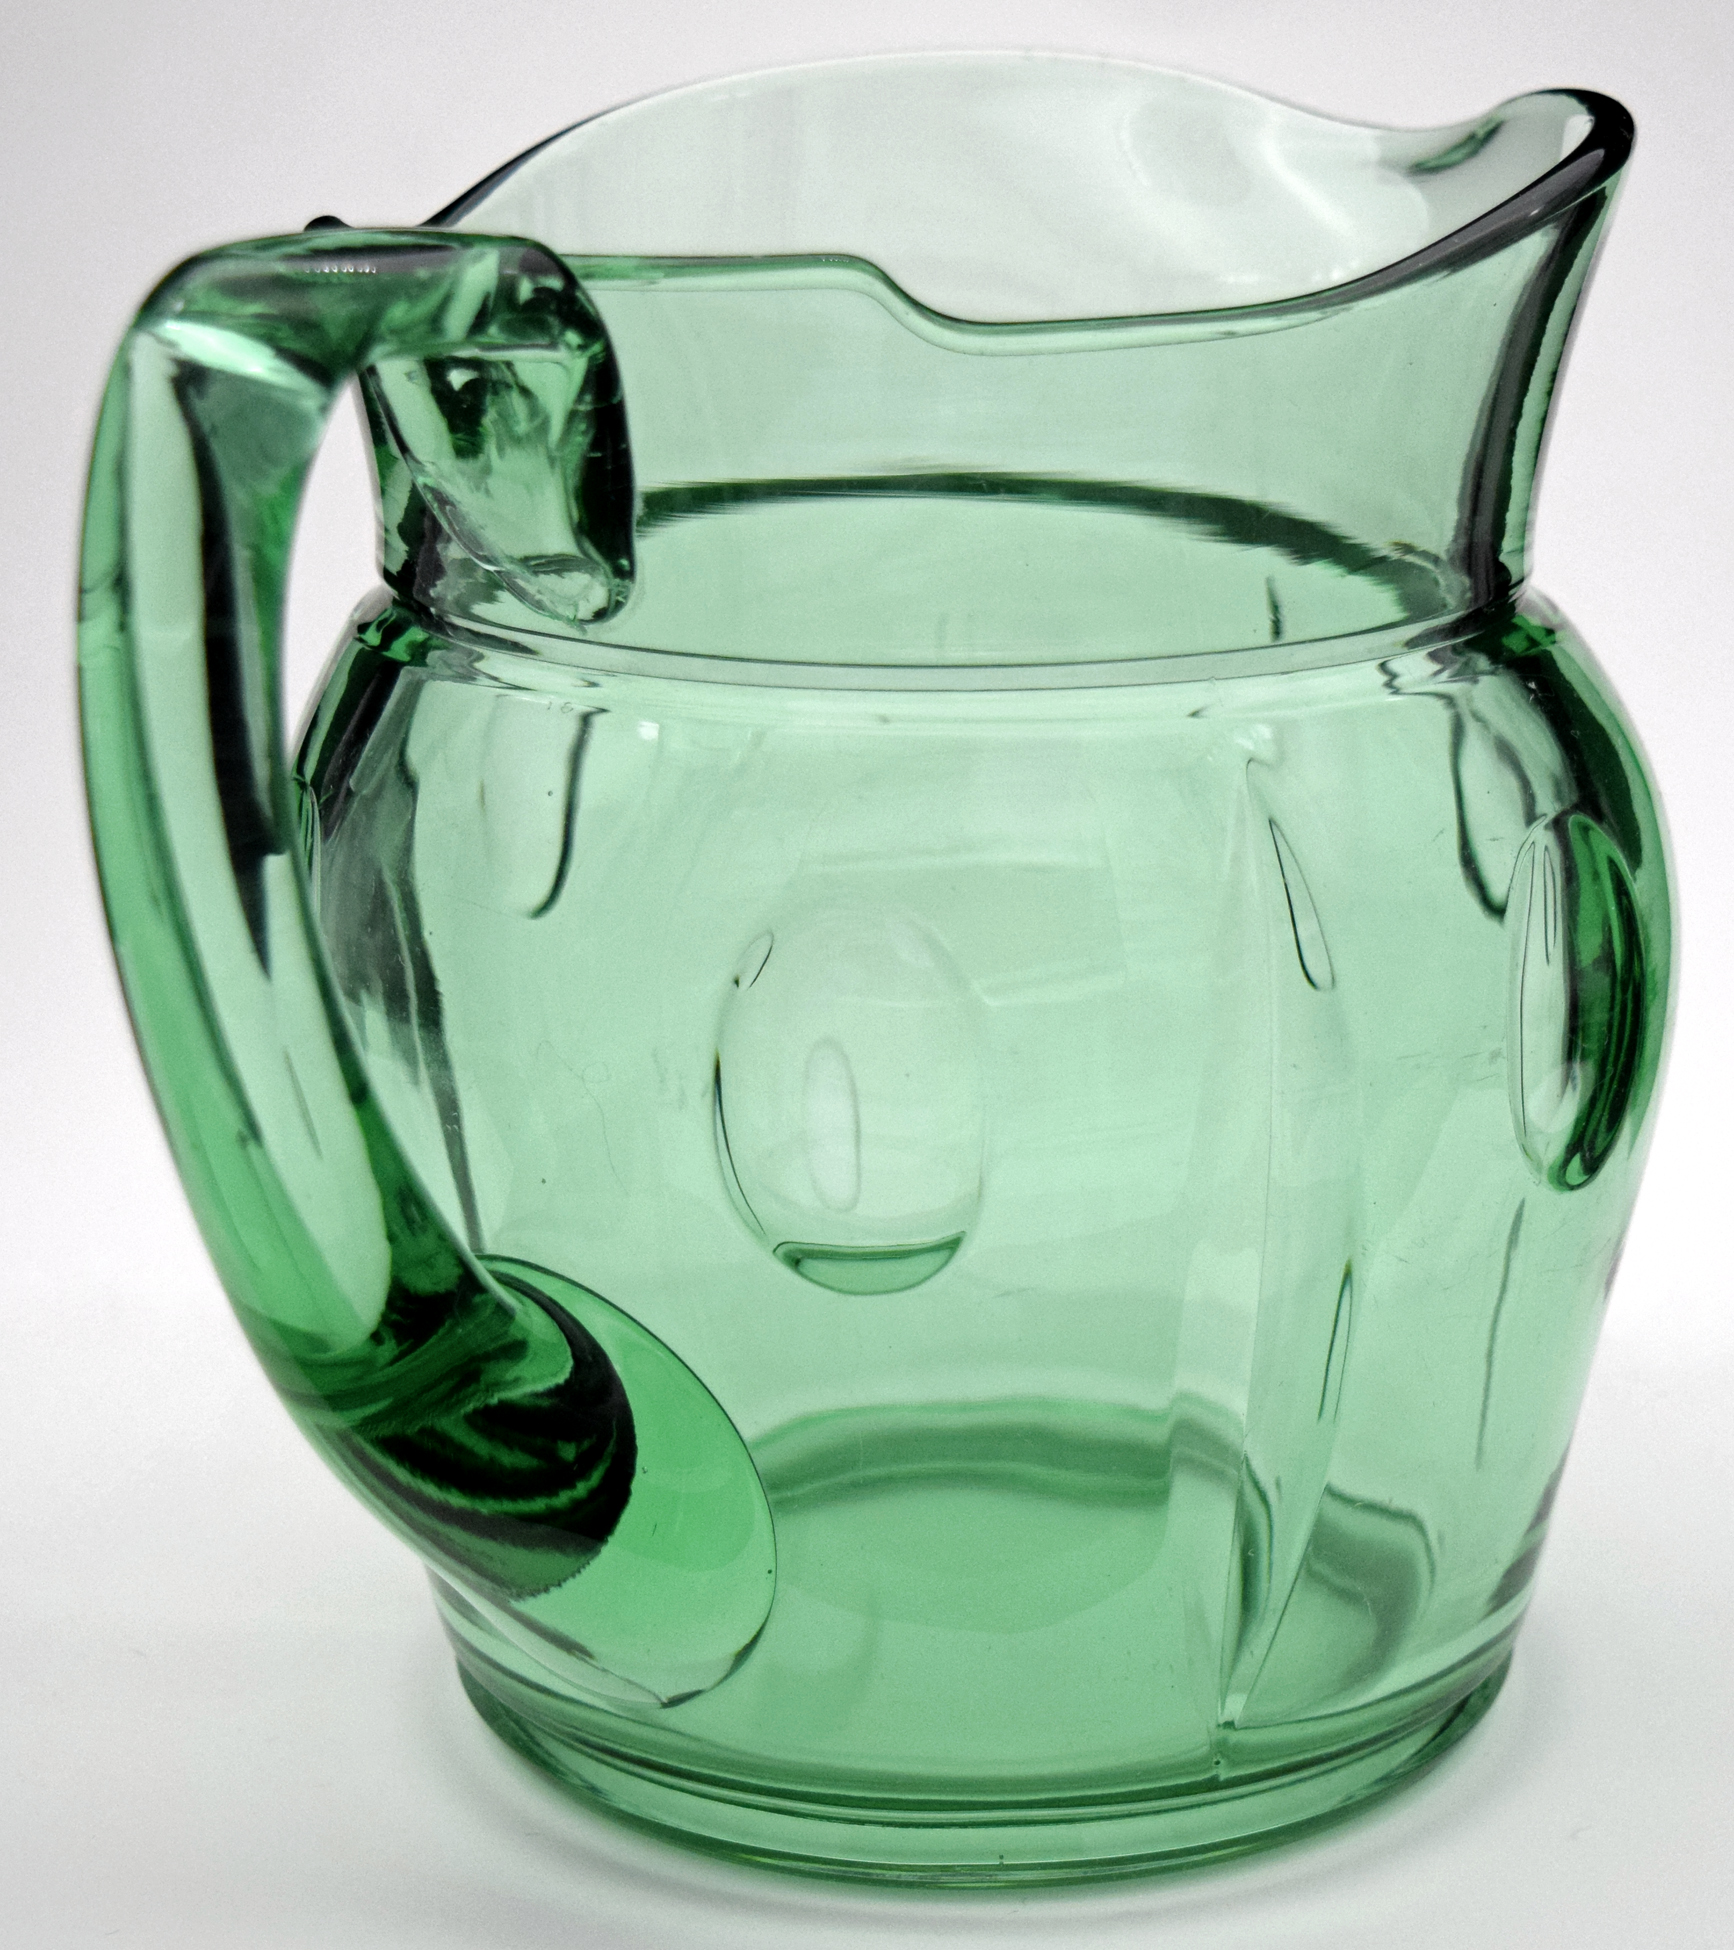 Duncan and Miller Plaza Green Pitcher / Jug The Handle